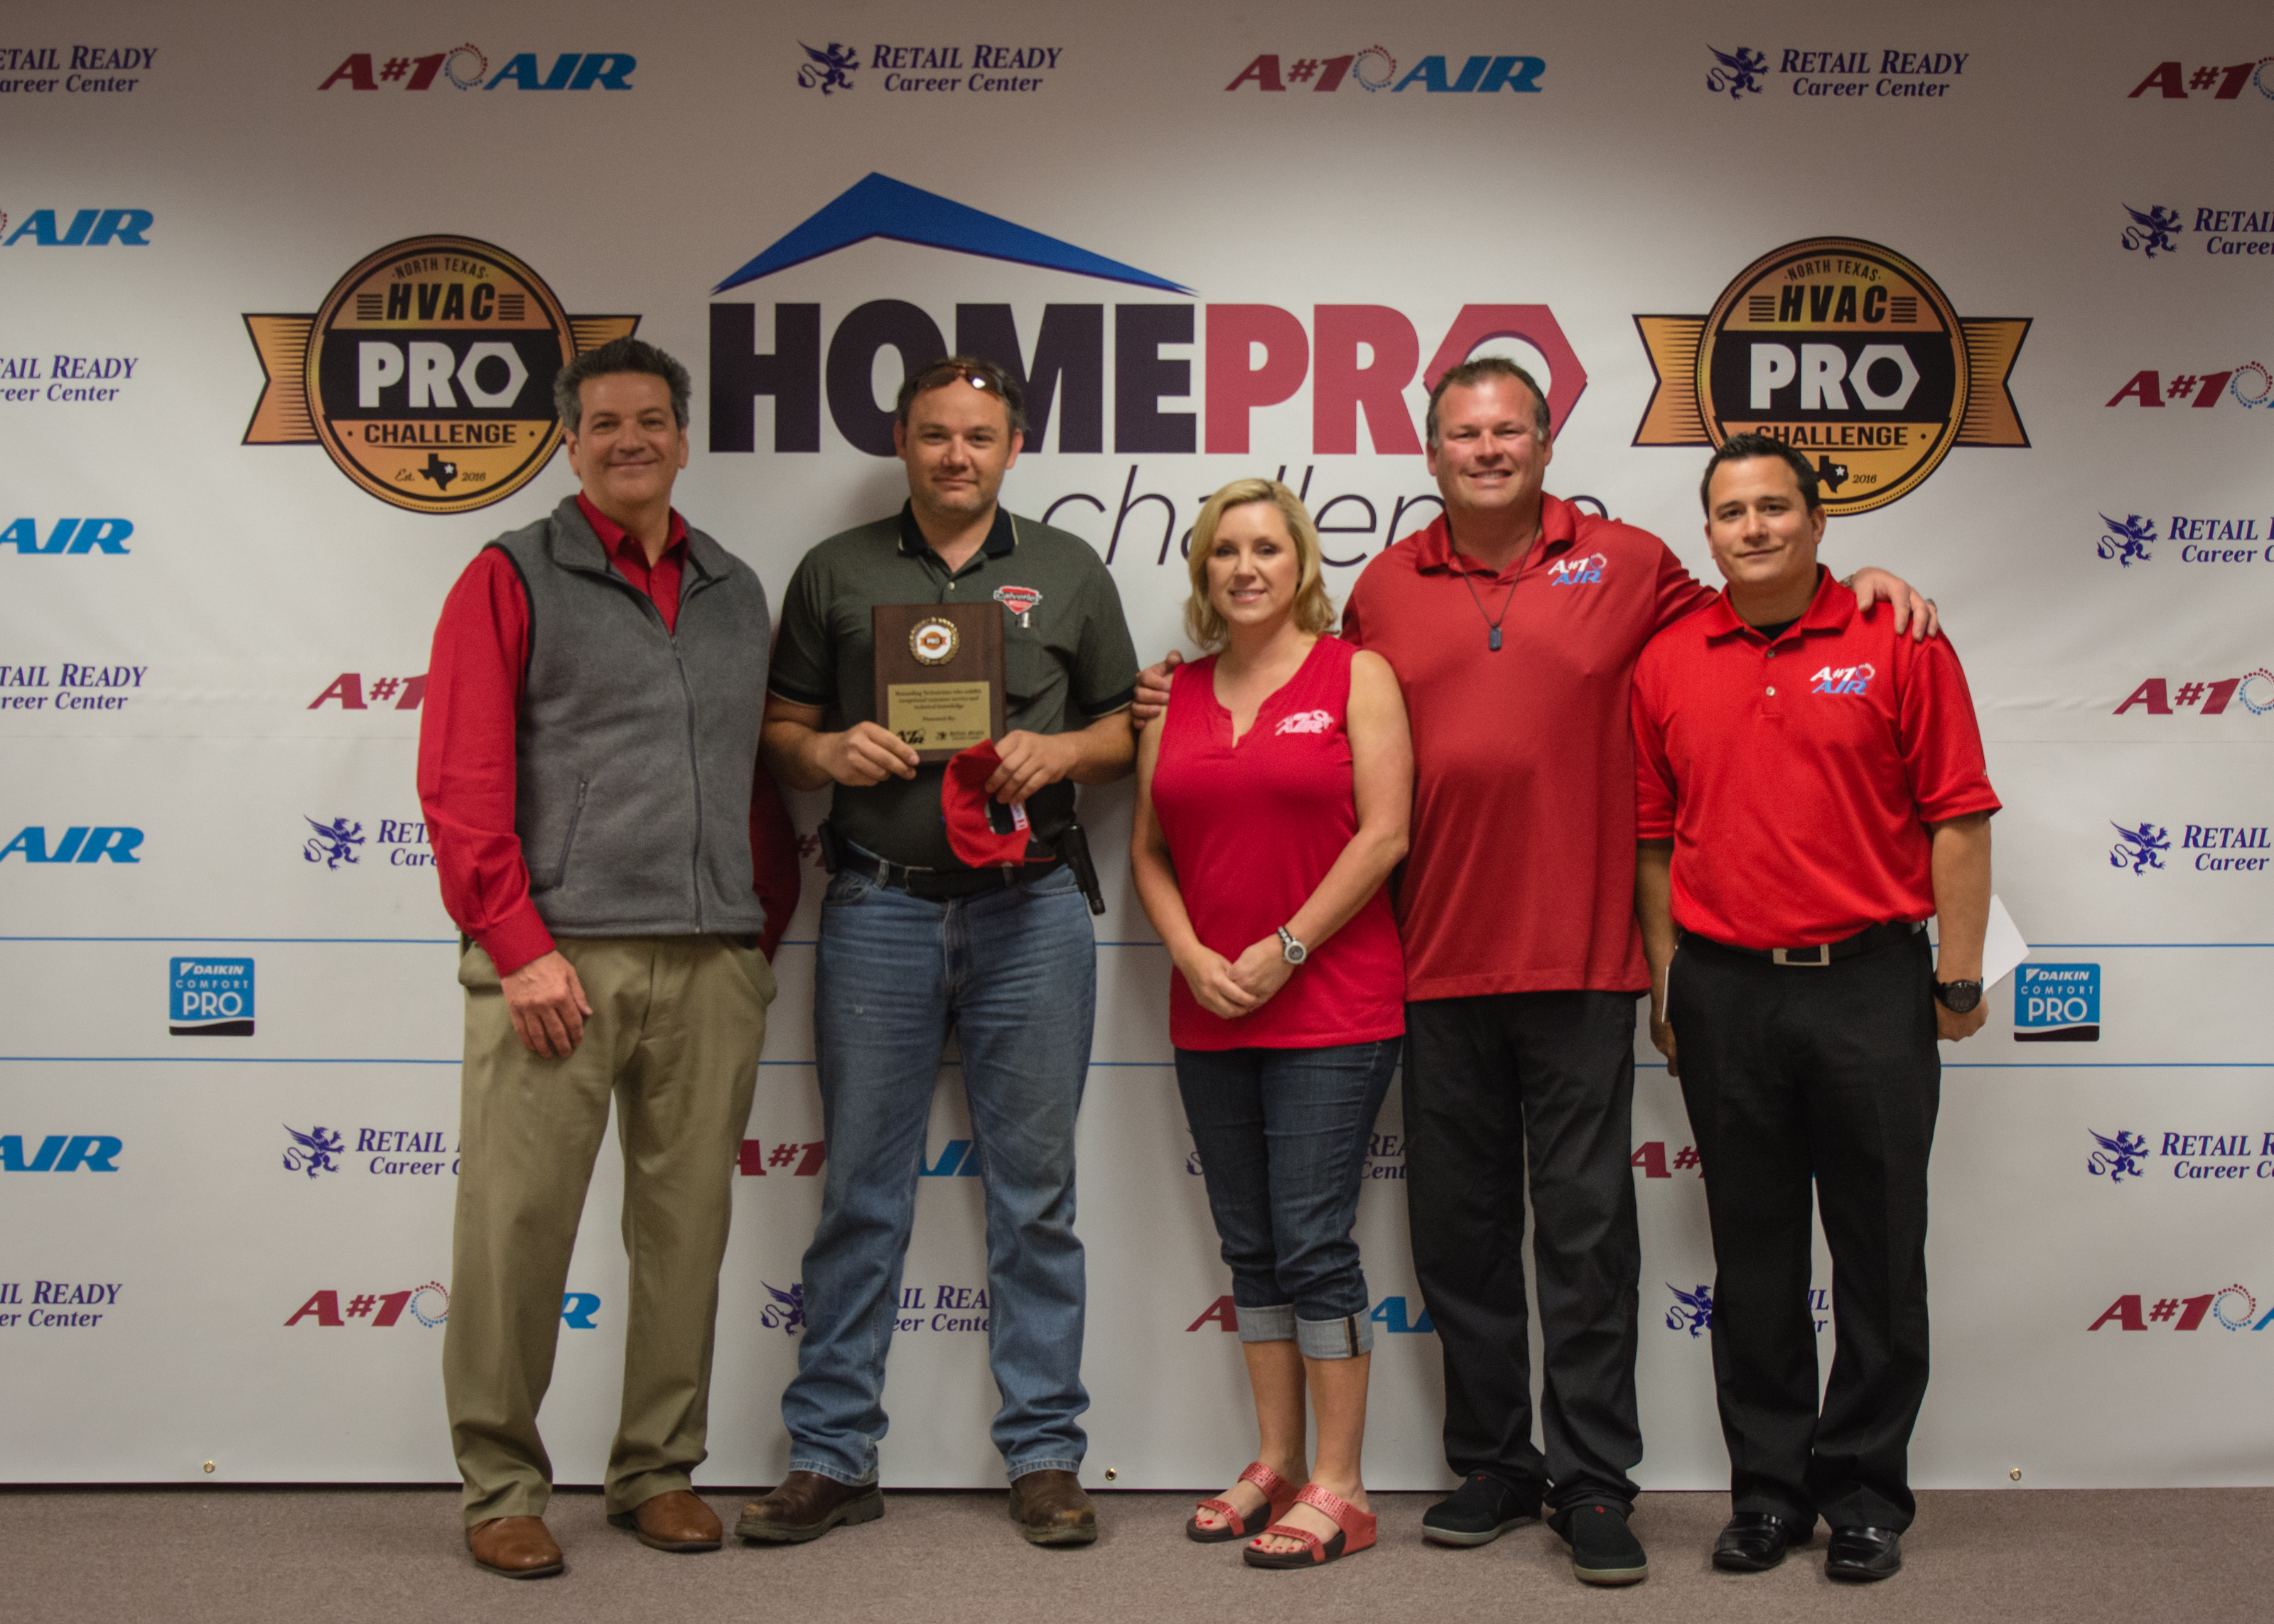 4th - Gary McDonald - Calverley Service Experts - Home Pro Challenge Over 2